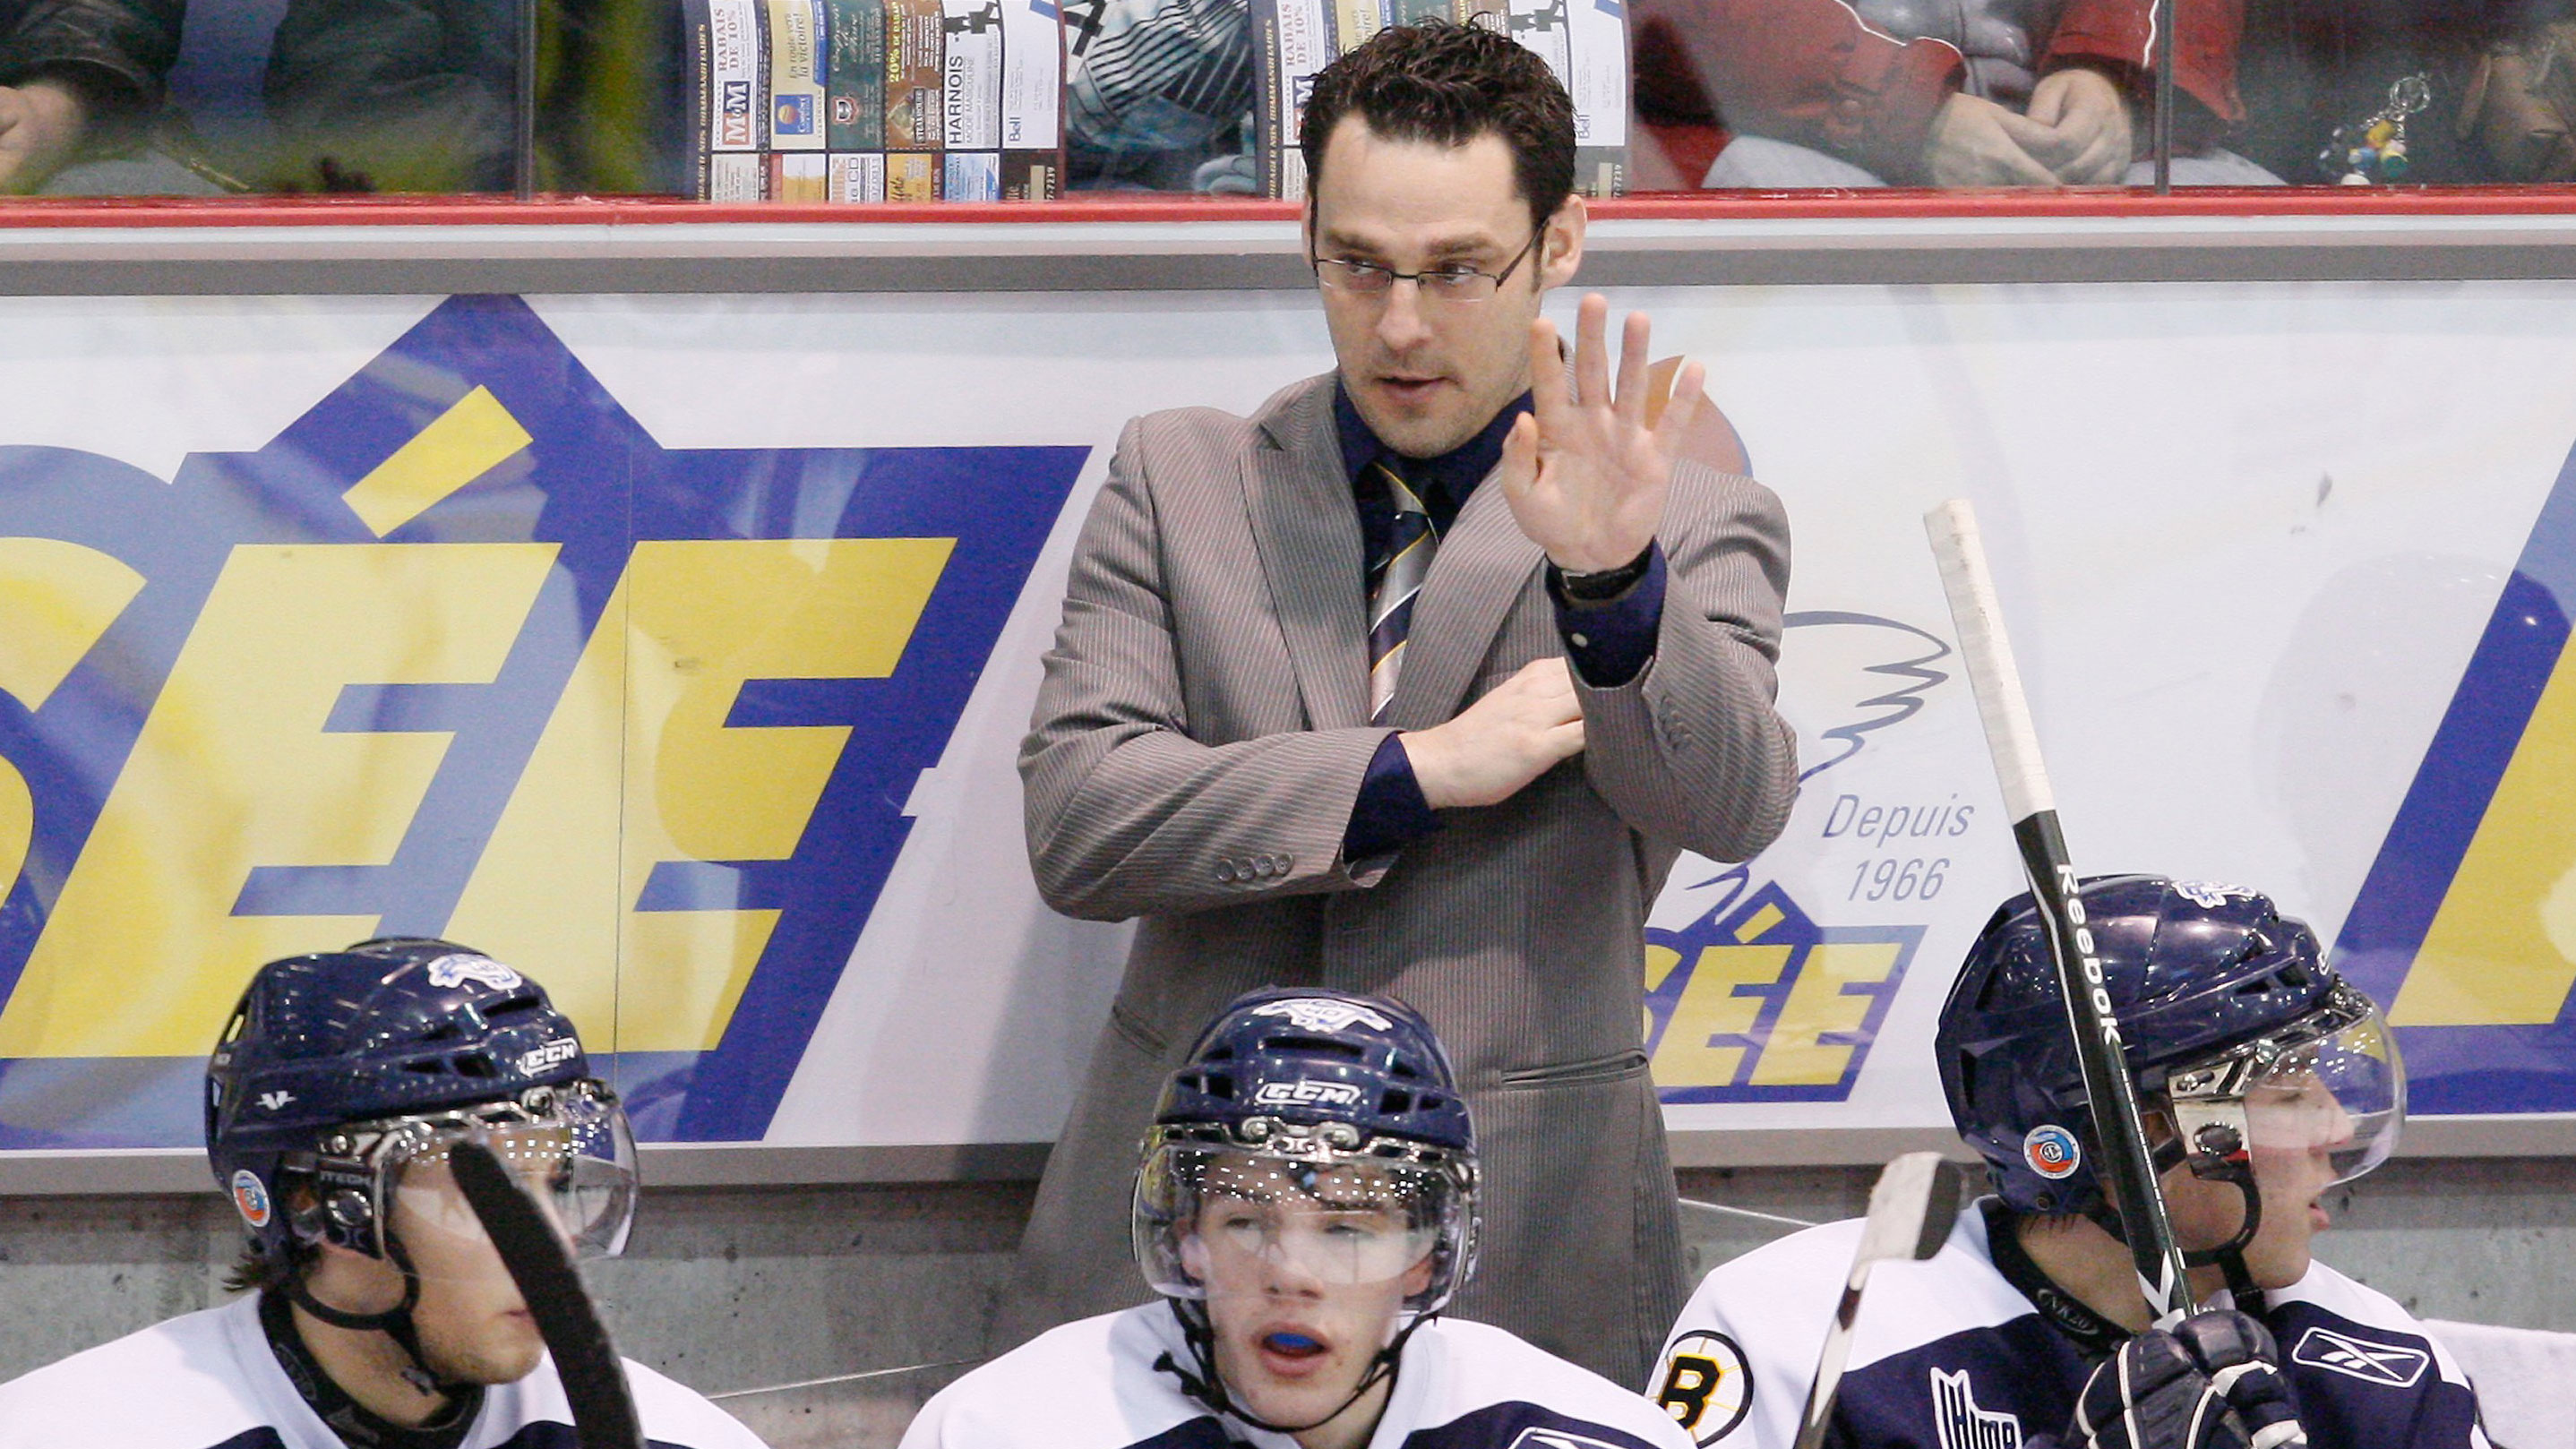 CHL: Memorial Cup Coach Veilleux Returns To League With QMJHL's Victoriaville Tigres